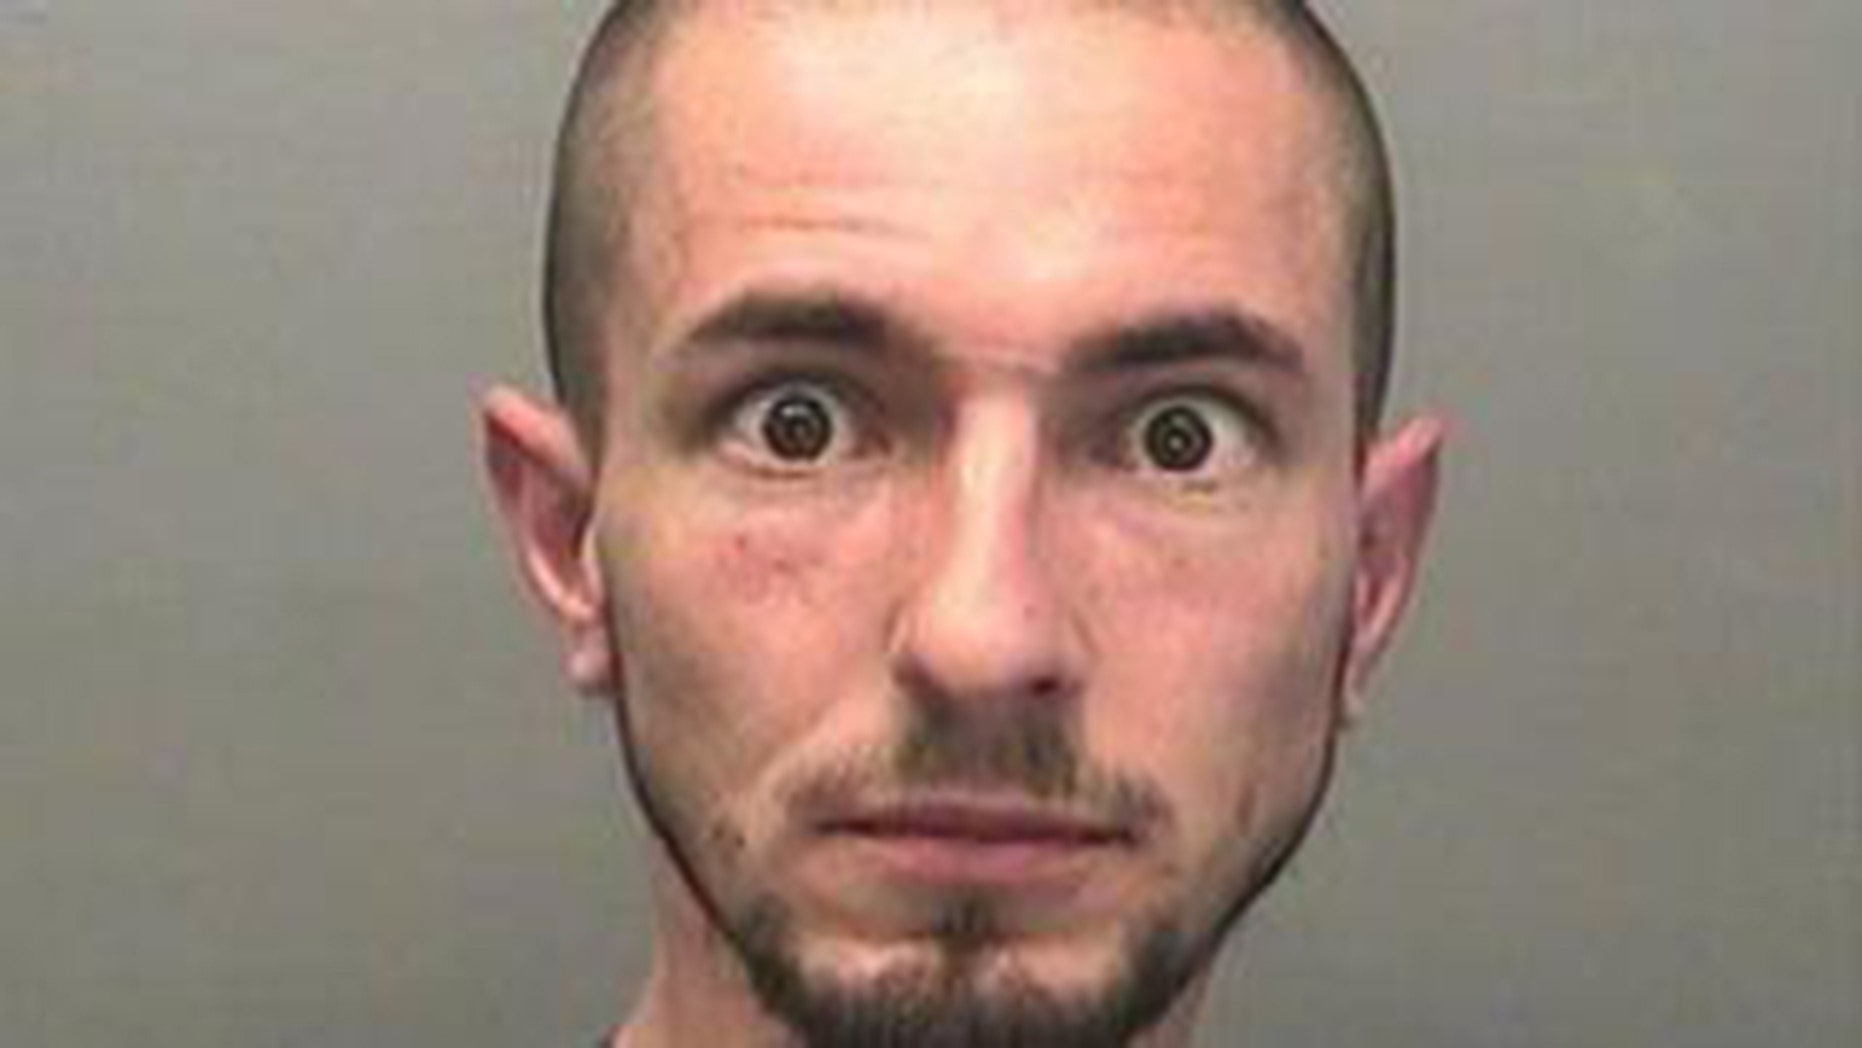 Wayne Esmonde, 35, wanted this mugshot removed from the South Wales Police's Facebook page.